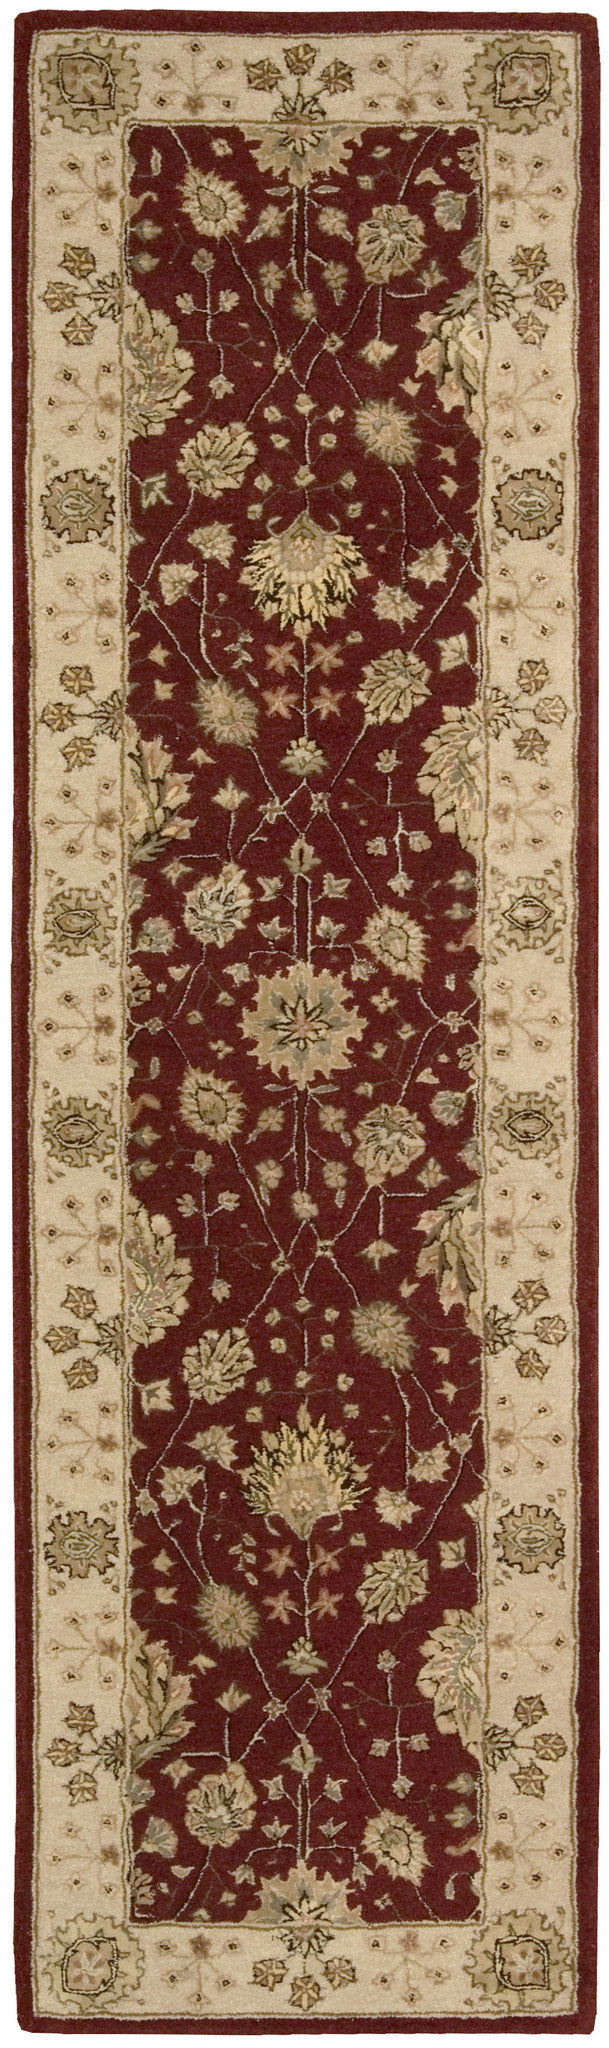 Nourison Nourison 3000 Red Area Rug 3102 RED